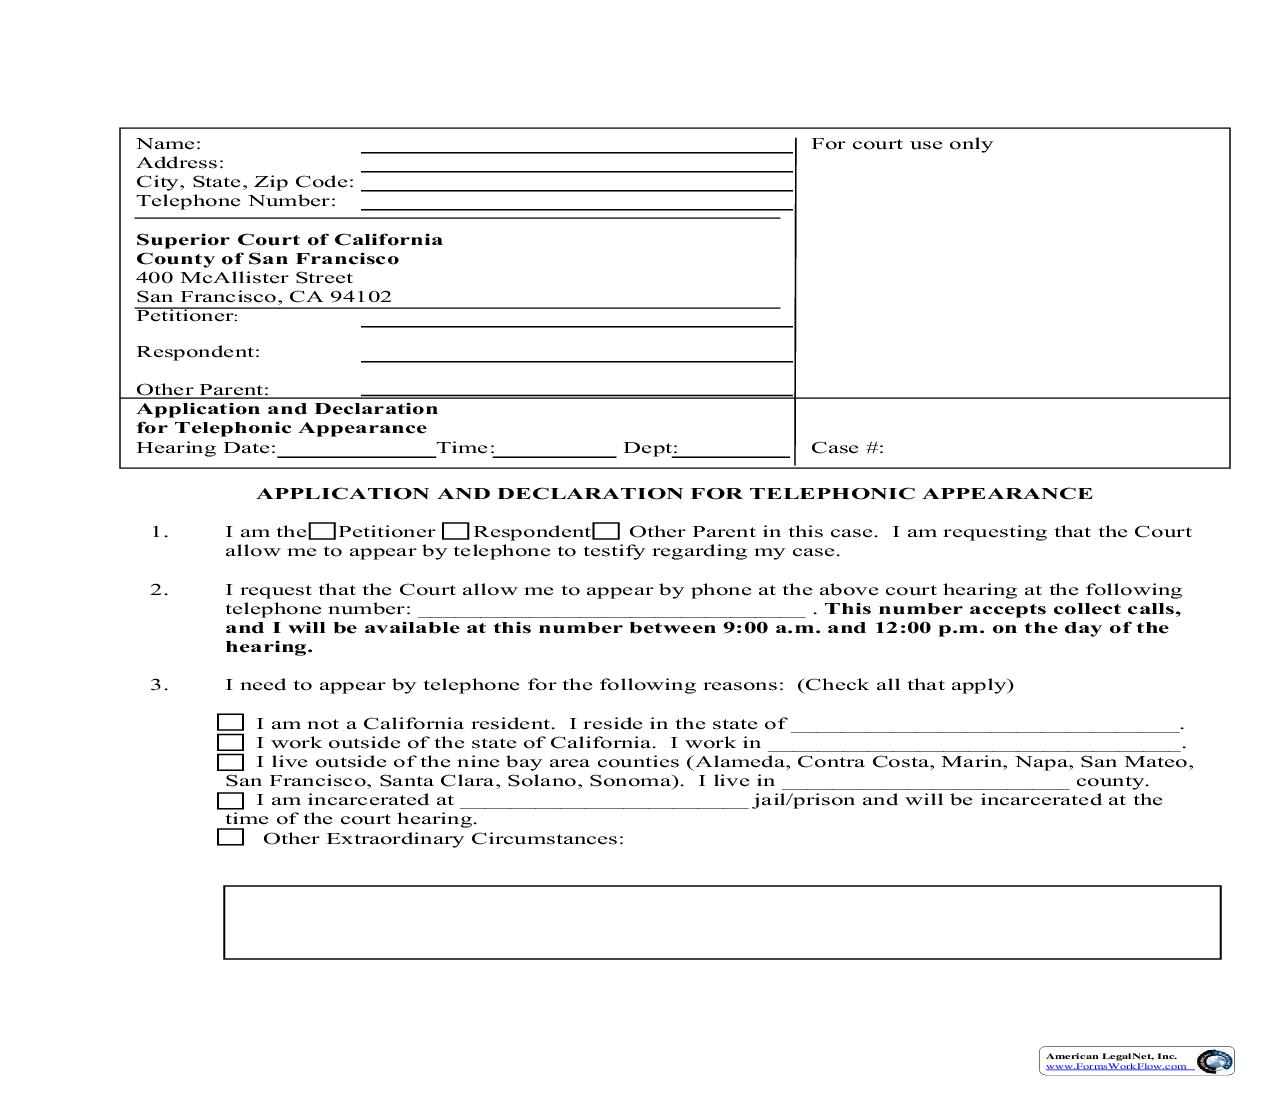 Application And Declaration For Telephonic Appearance (Family Law-11.7D(1))   Pdf Fpdf Doc Docx   California